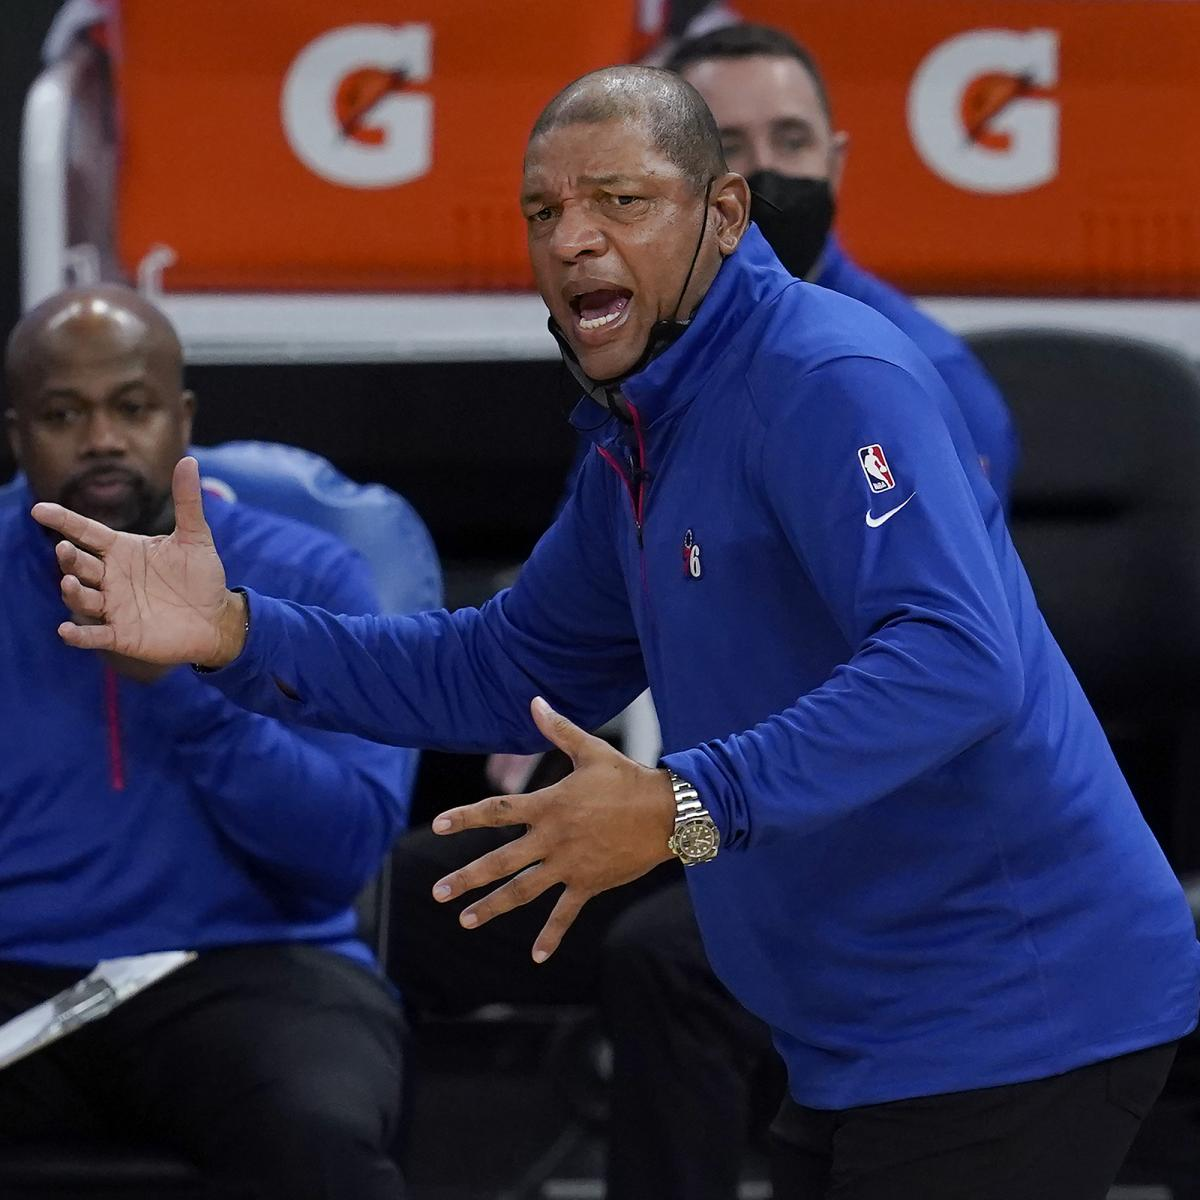 Doc Rivers Says 76ers Were 'Soft' Defensively in 124-117 Loss to Bucks